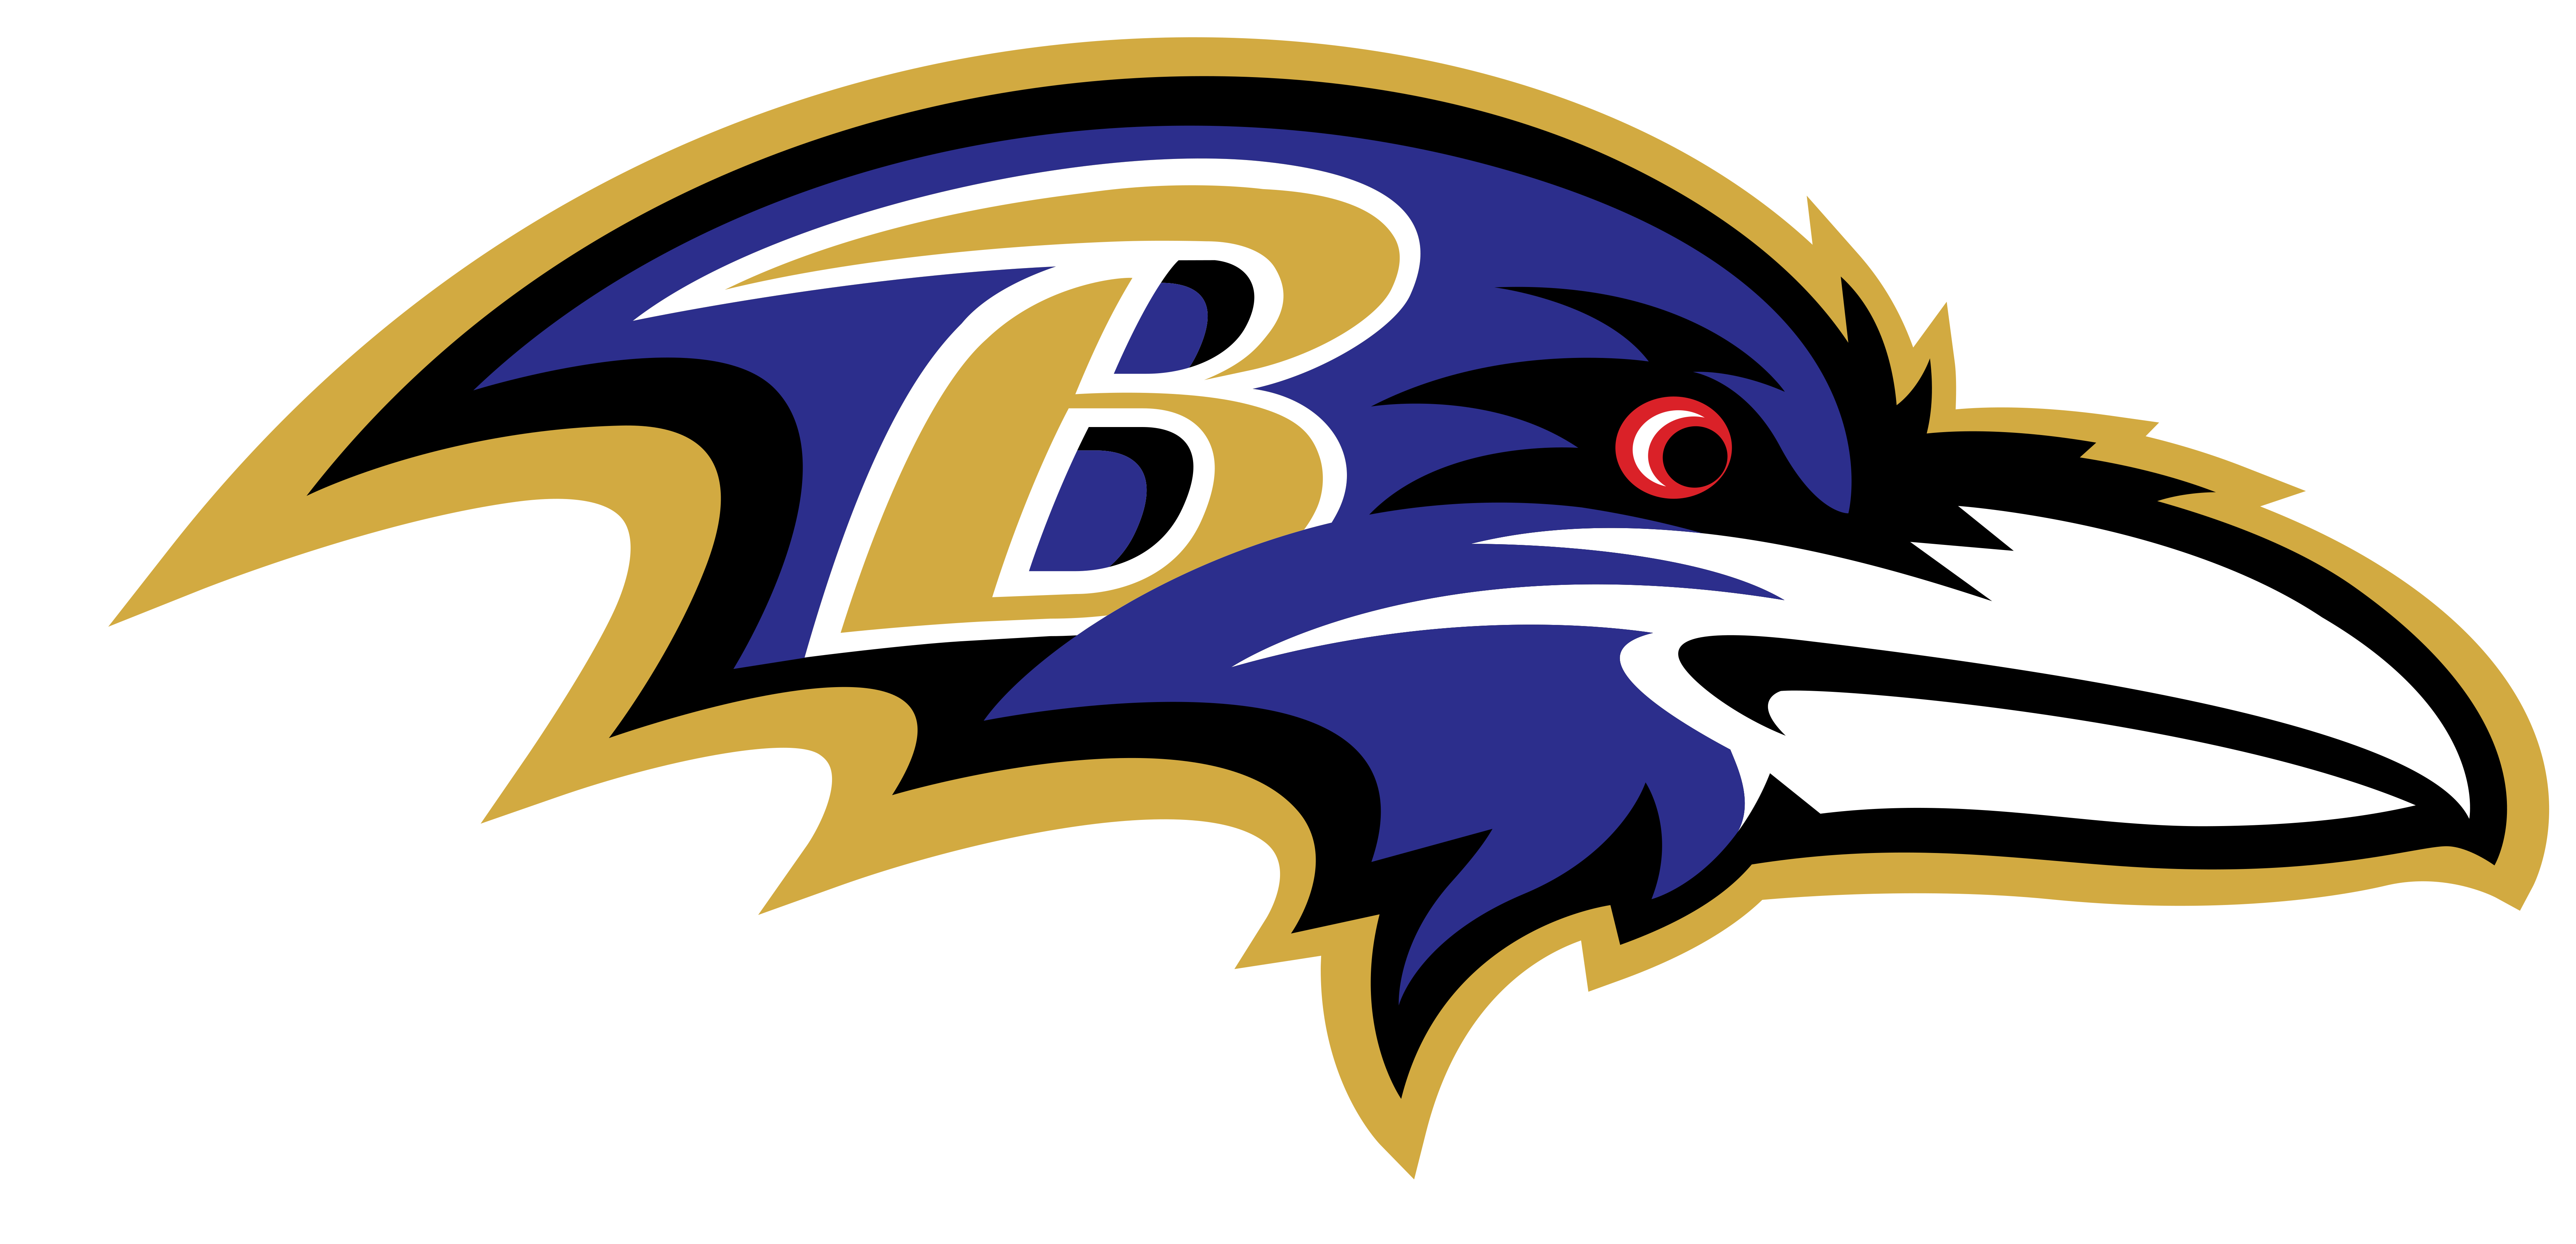 HD Wallpaper | Background ID:668741. 7084x3420 Sports Baltimore Ravens